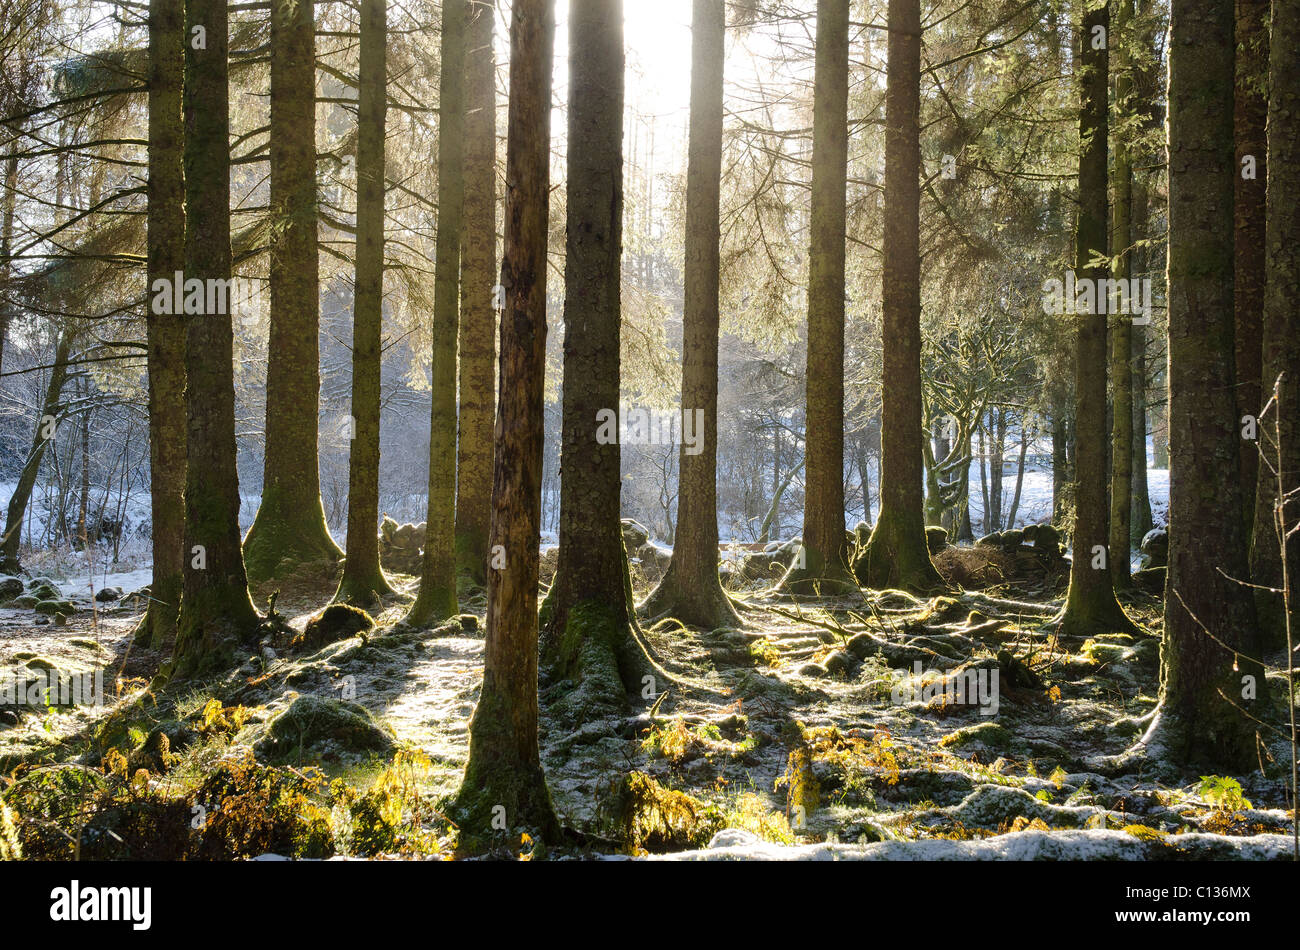 Radiant sun shining through trunks of mature pine forest in misty and frosty conditions - Stock Image